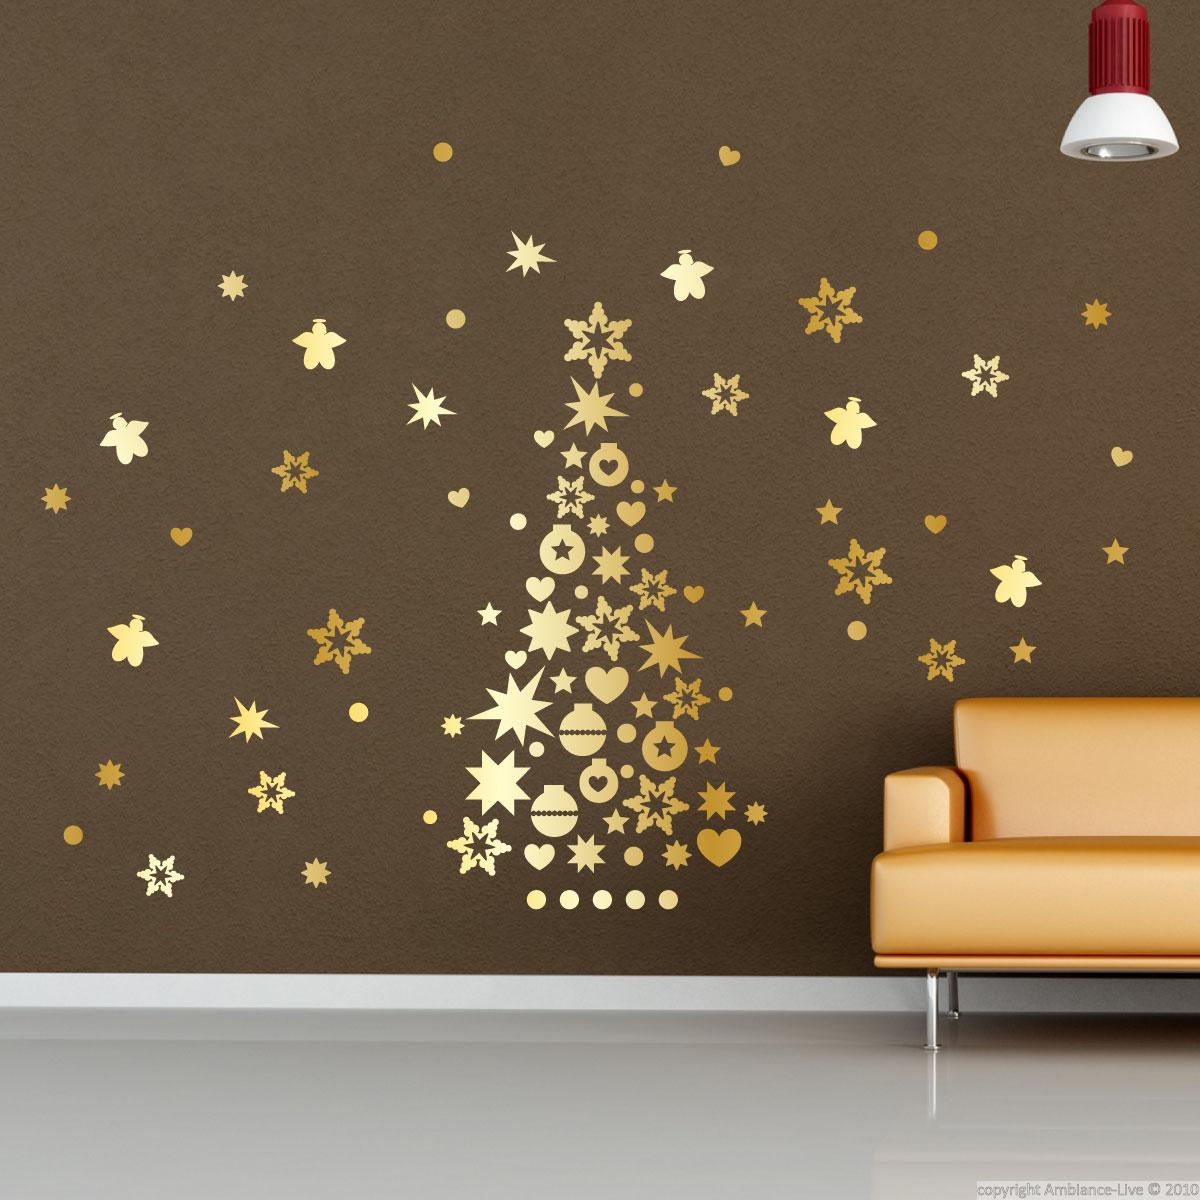 Wall decal christmas decoration wall decal business wall for Ambiance decoration